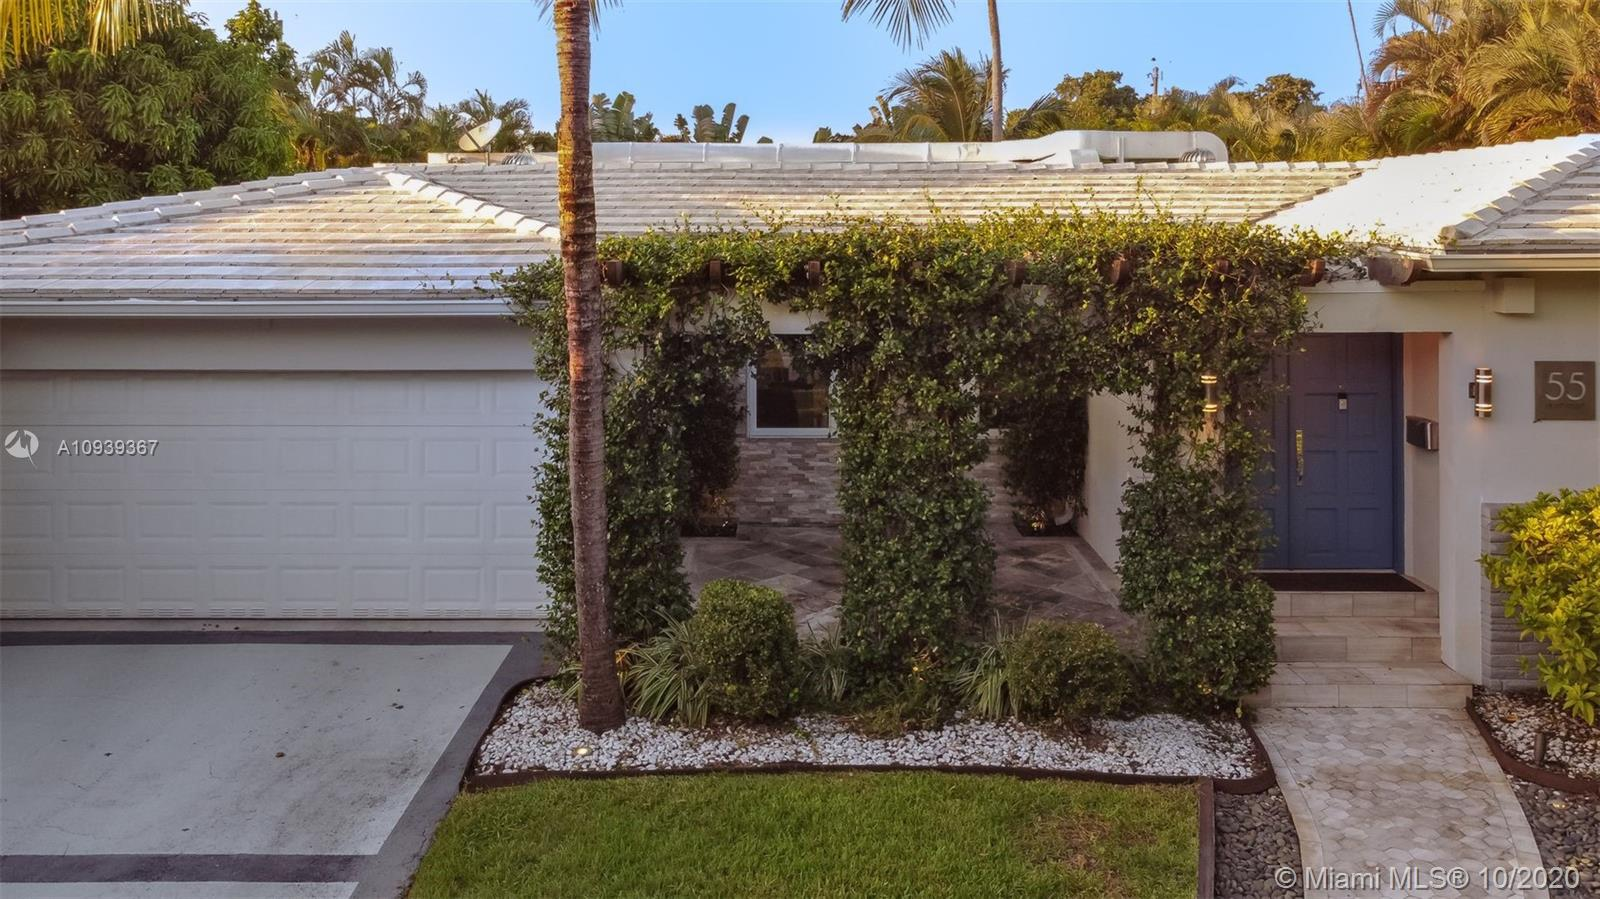 Photo of 55 NE 94th St # listing for Sale